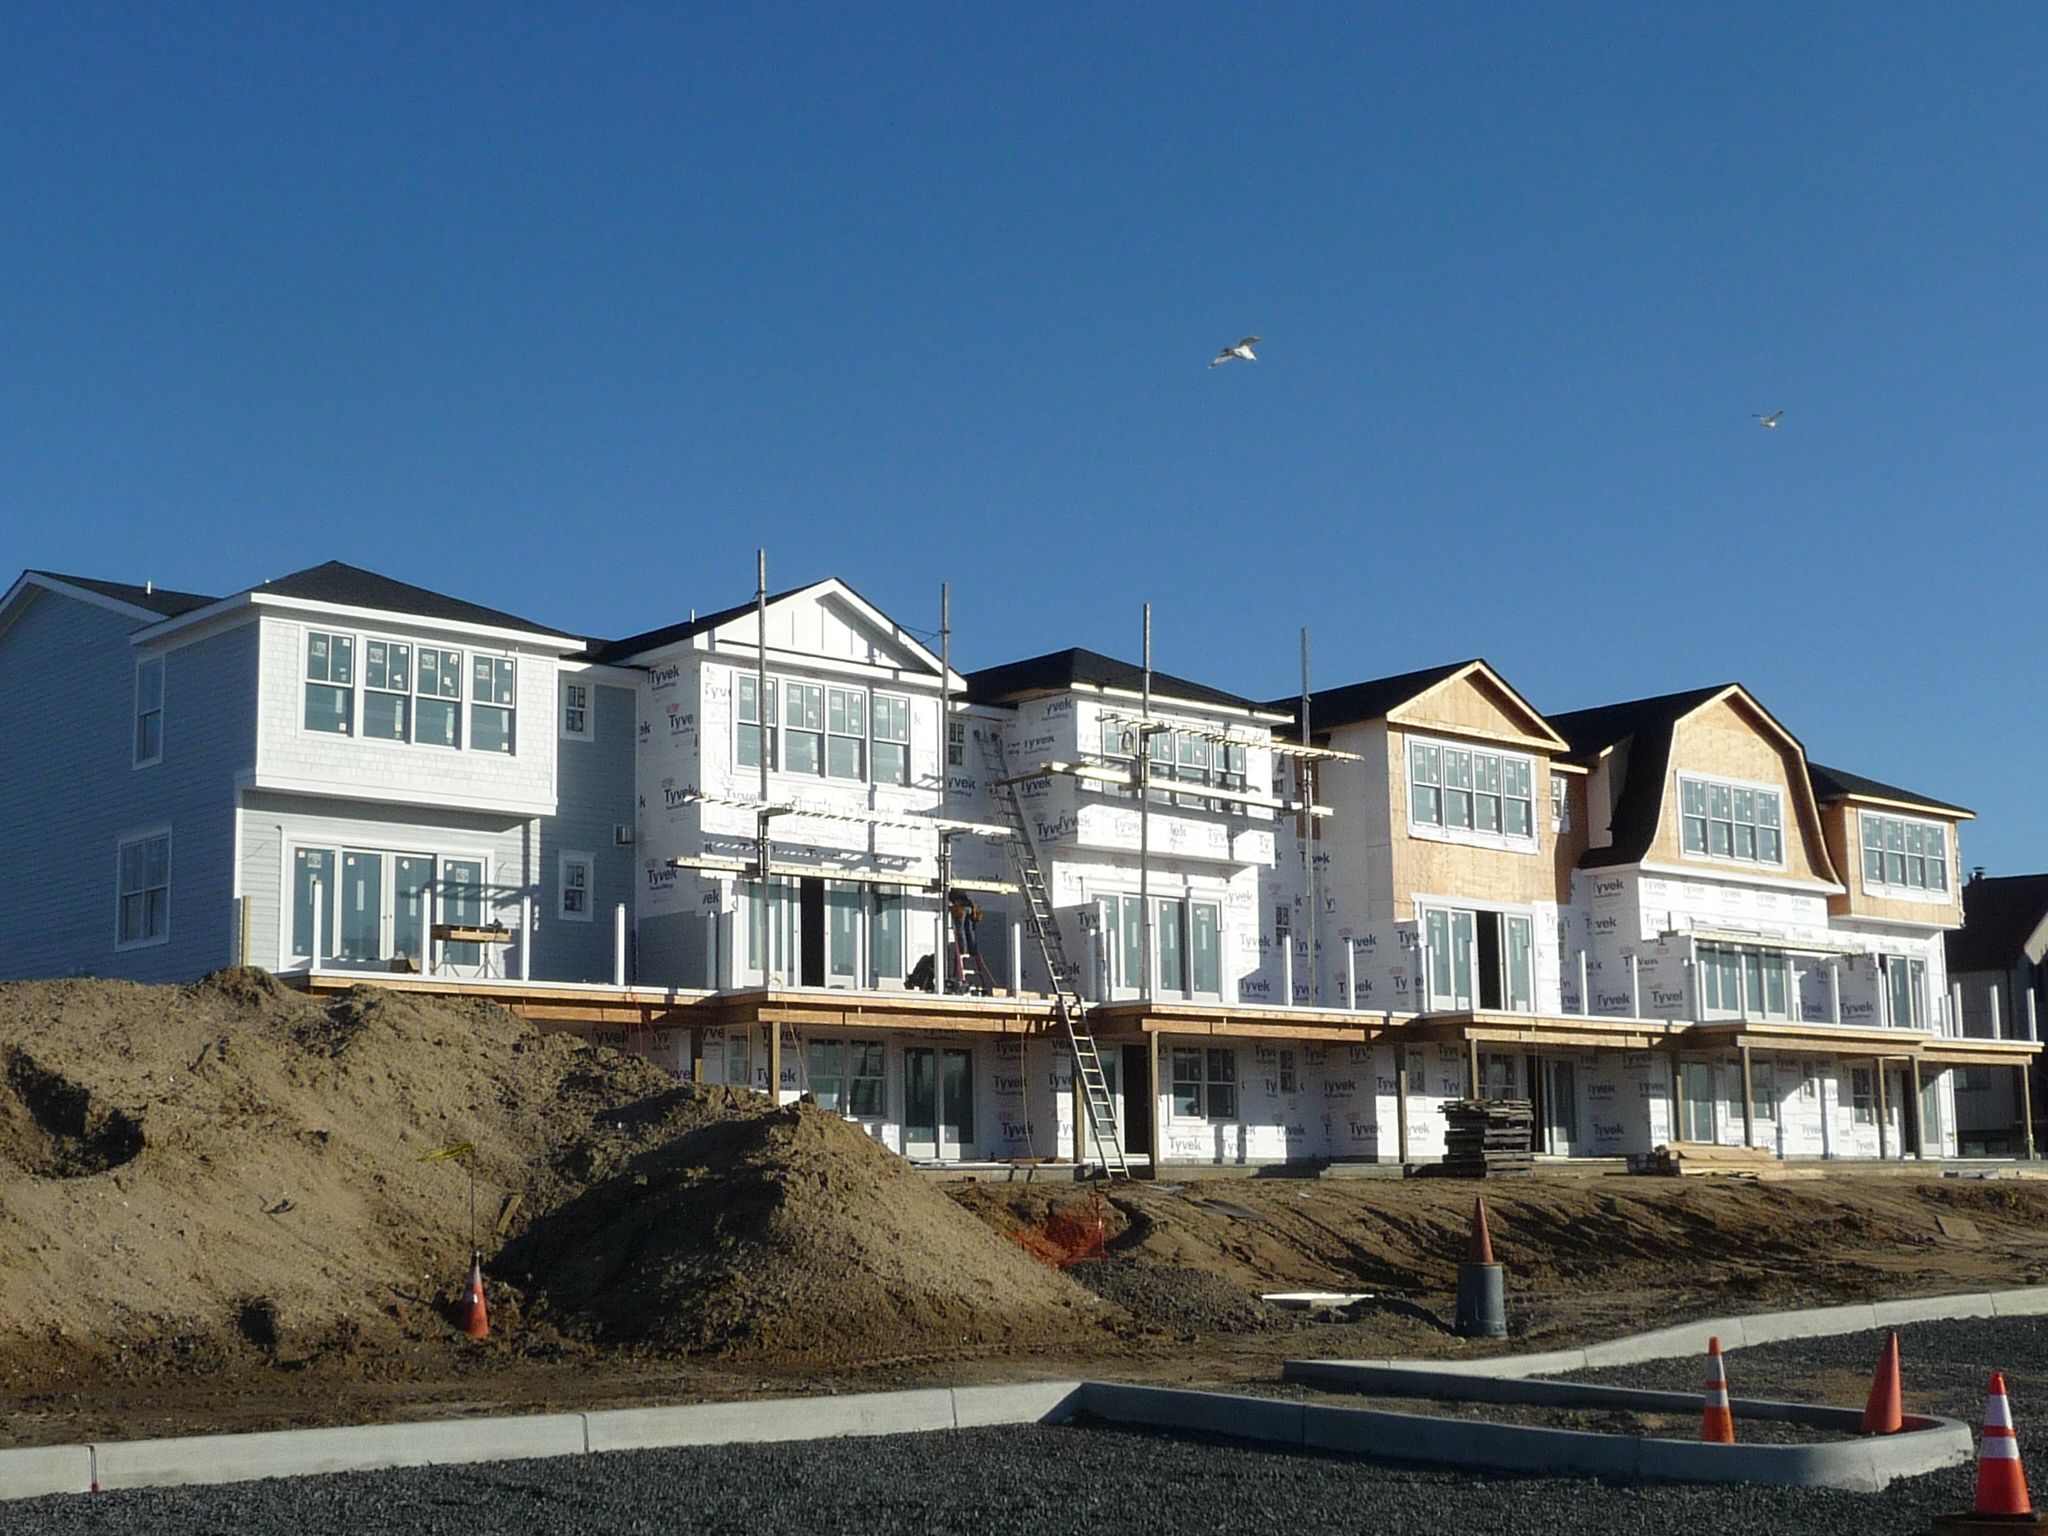 Sunset Villas condos is in the north end of Long Branch by the Shrewsbury River